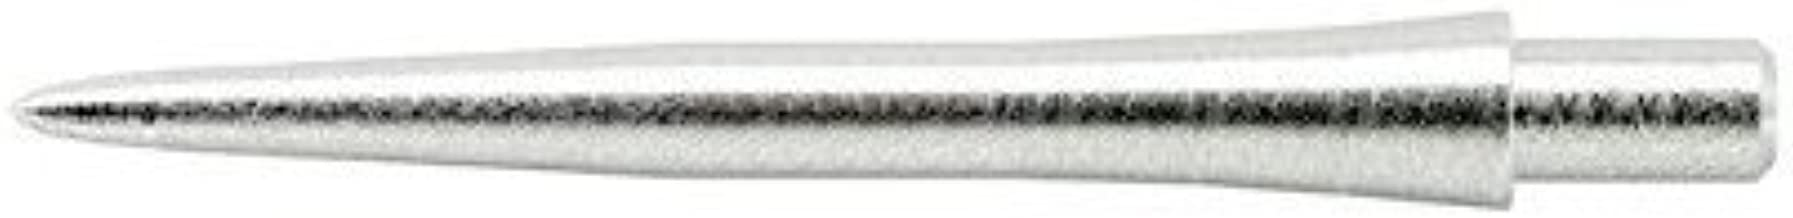 1 x SET TARGET STORM DART POINTS 26mm SILVER SMOOTH